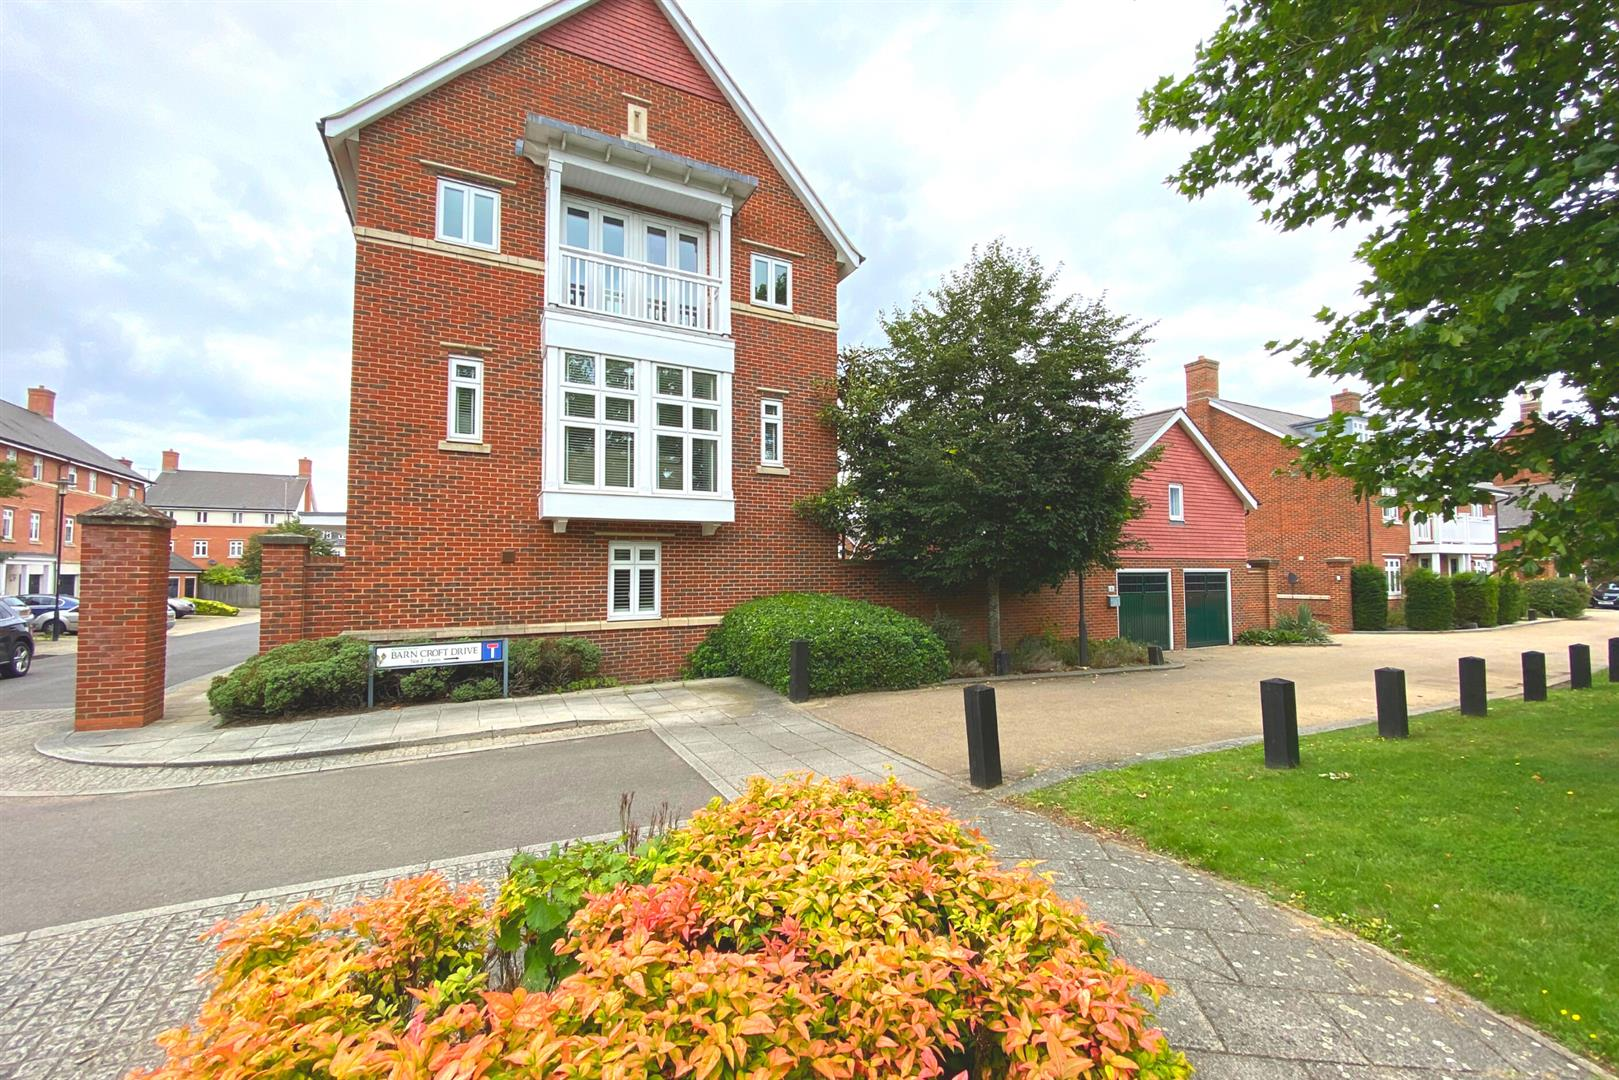 6 bed detached for sale in Lower Earley  - Property Image 1